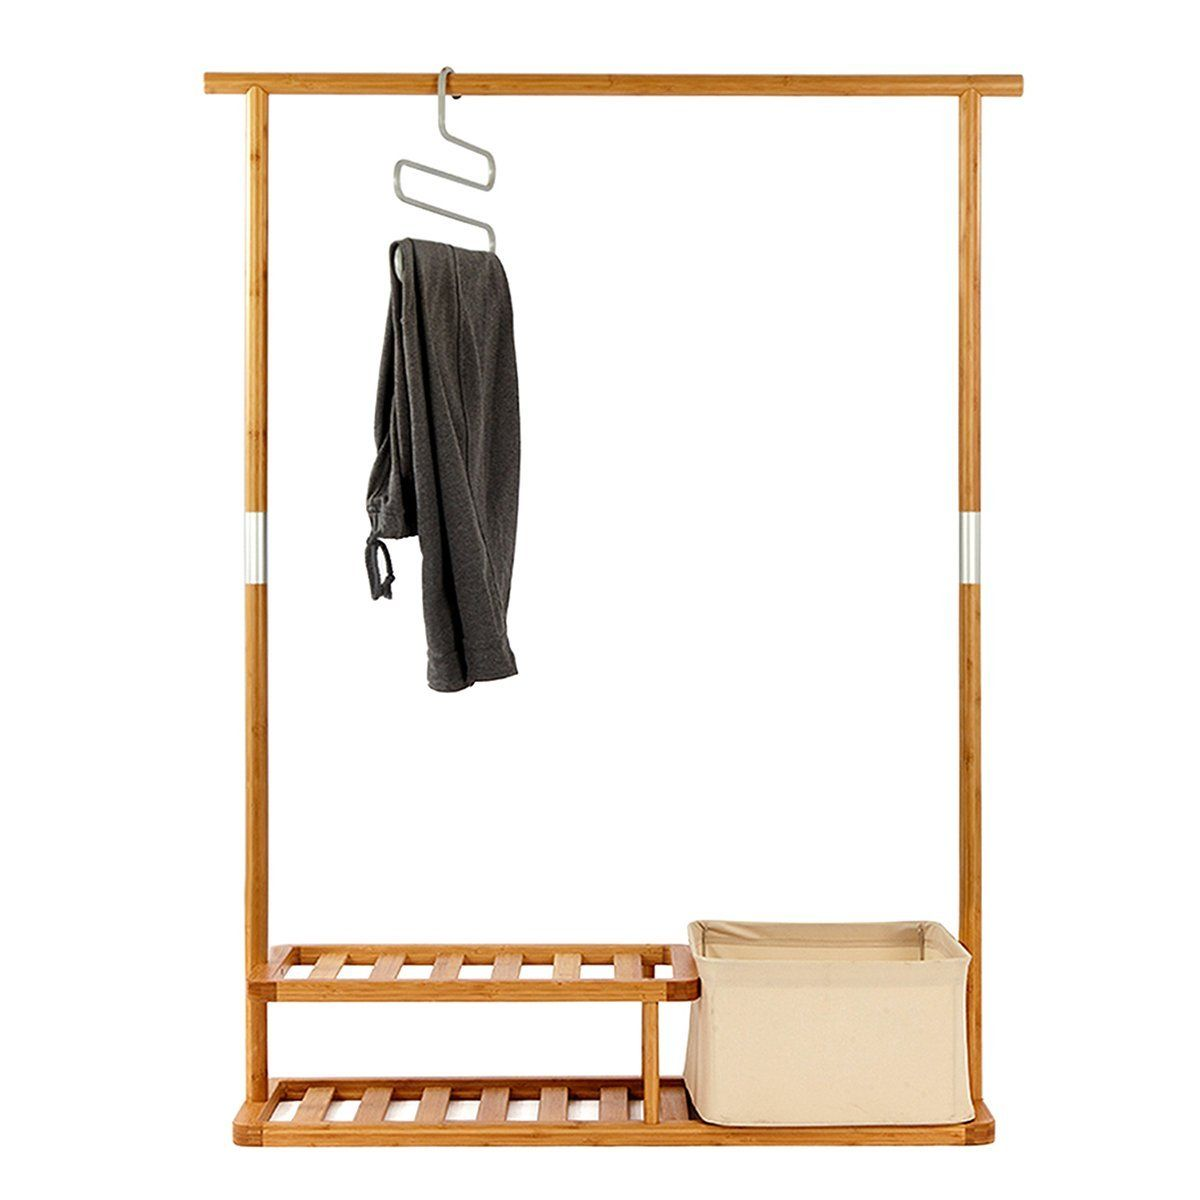 Multi Purpose Garment Rack Segarty Portable Clothes Hanging Easy Organization With Top Rod 2 Tier Shoe Shelves